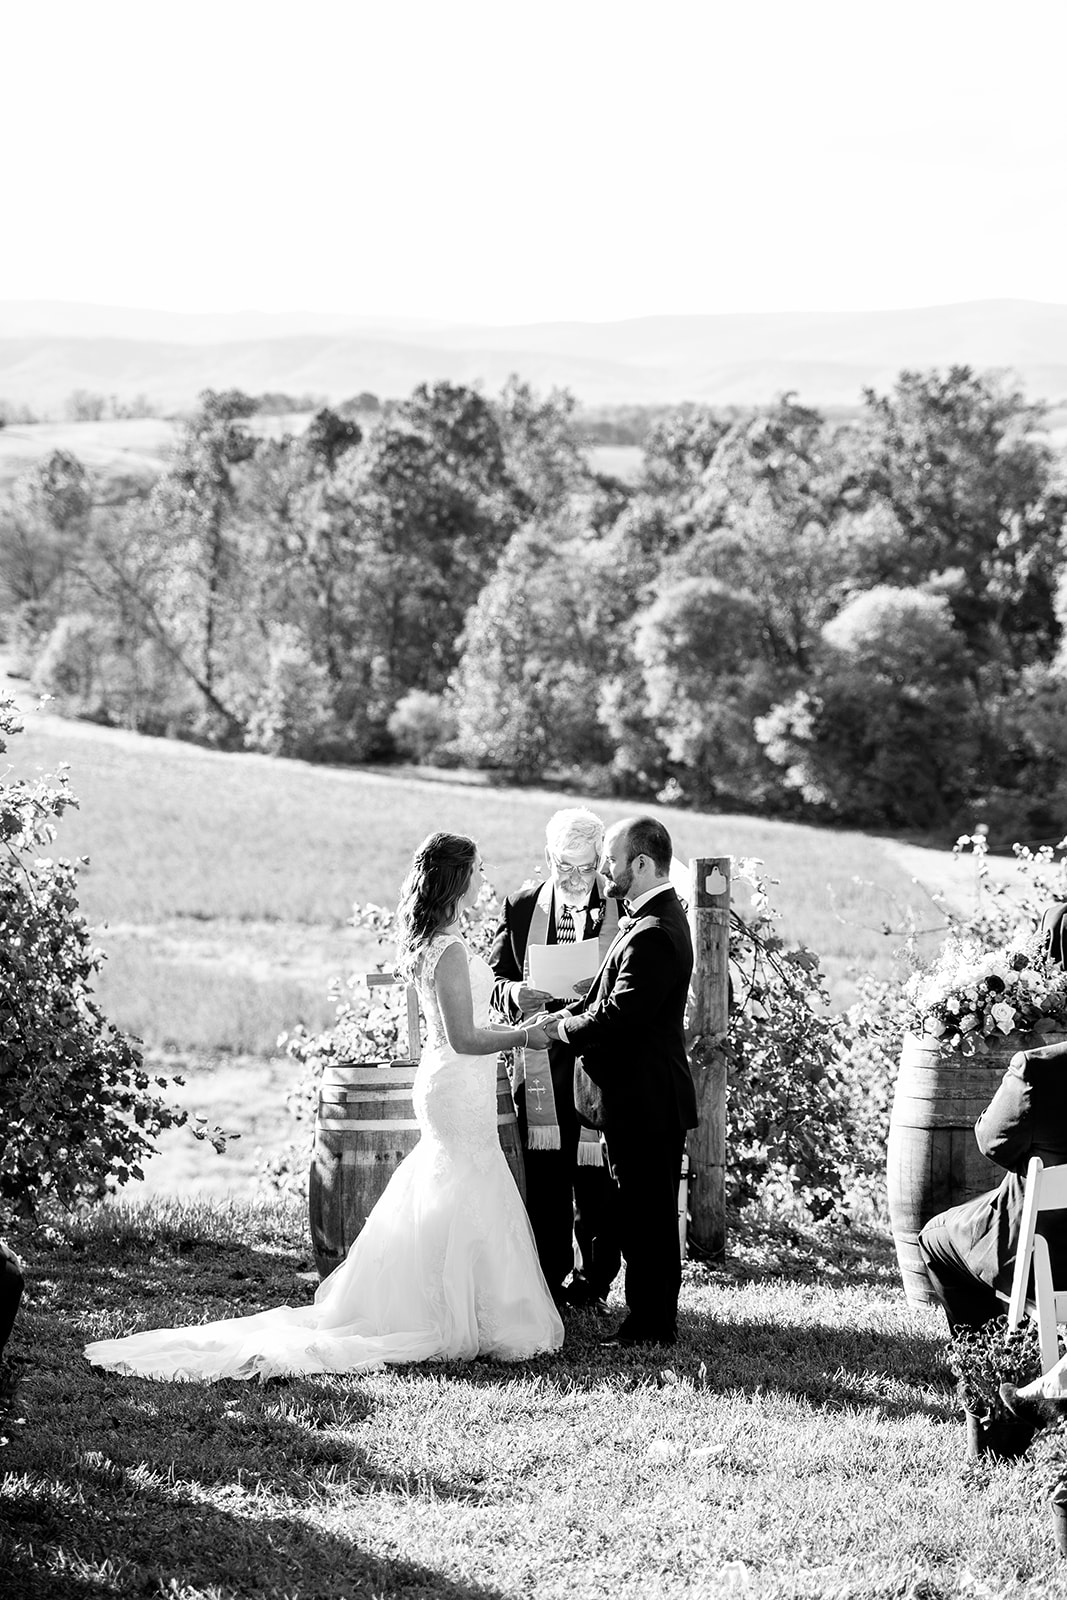 Alexa  Nathans Fall Wedding at Bluestone Vineyard - Image Property of www.j-dphoto.com